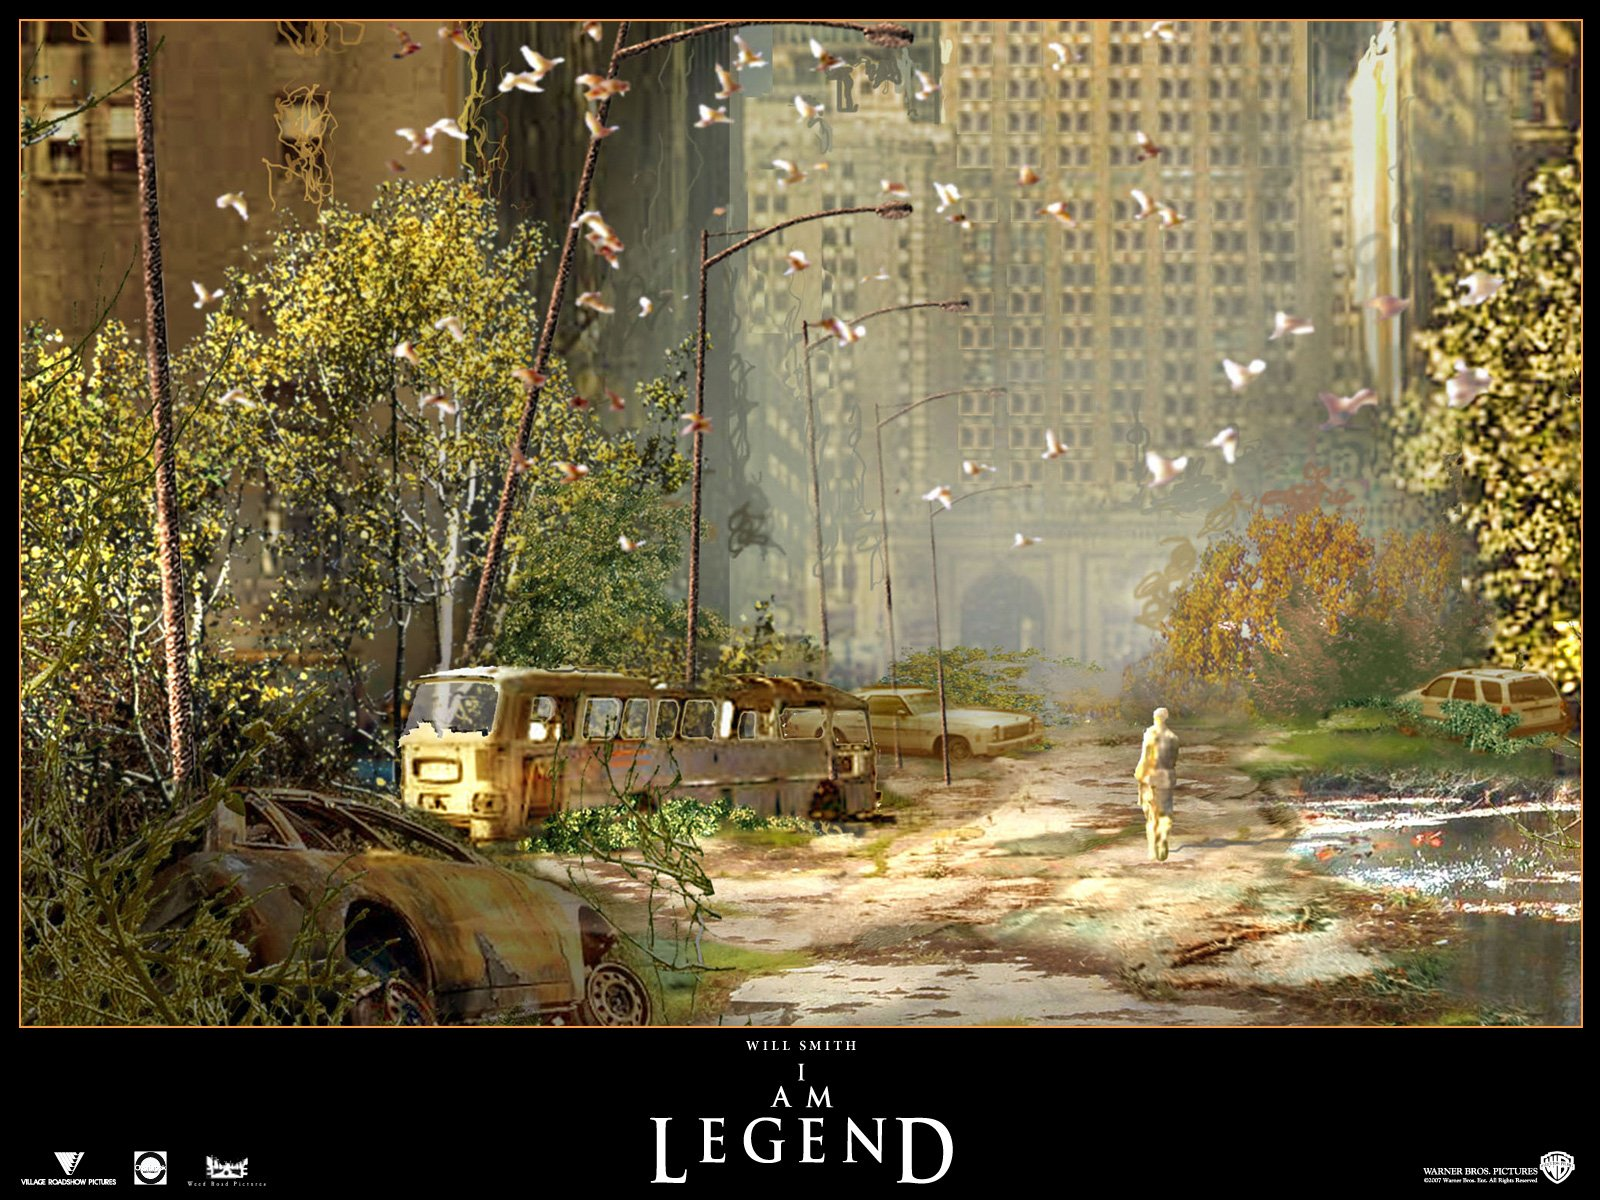 Am Legend 2007 wallpaper   FreeMovieWallpapersorg 1600x1200